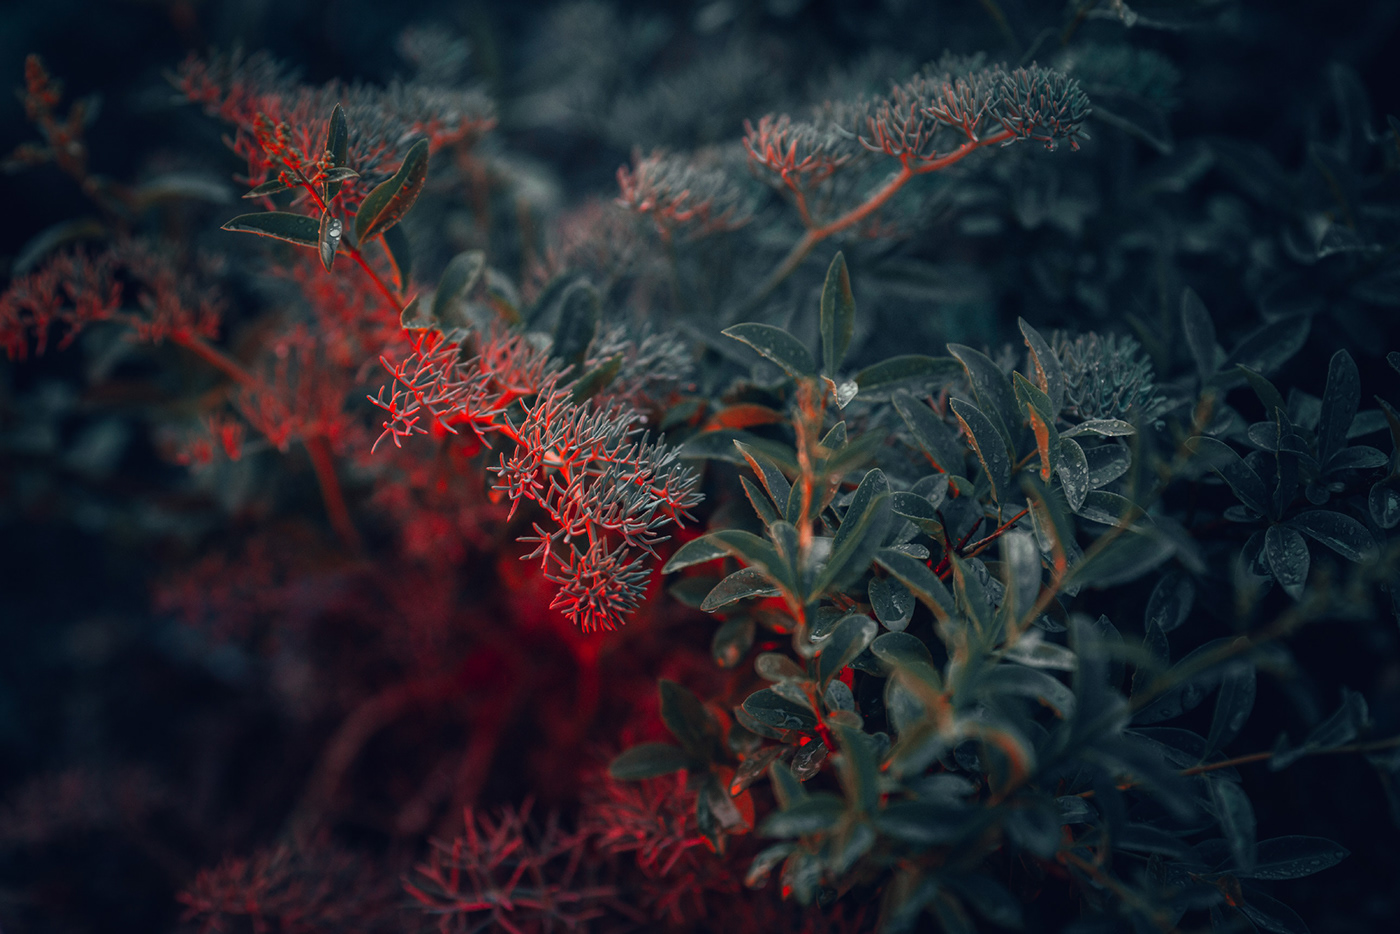 plant in red-green neon light